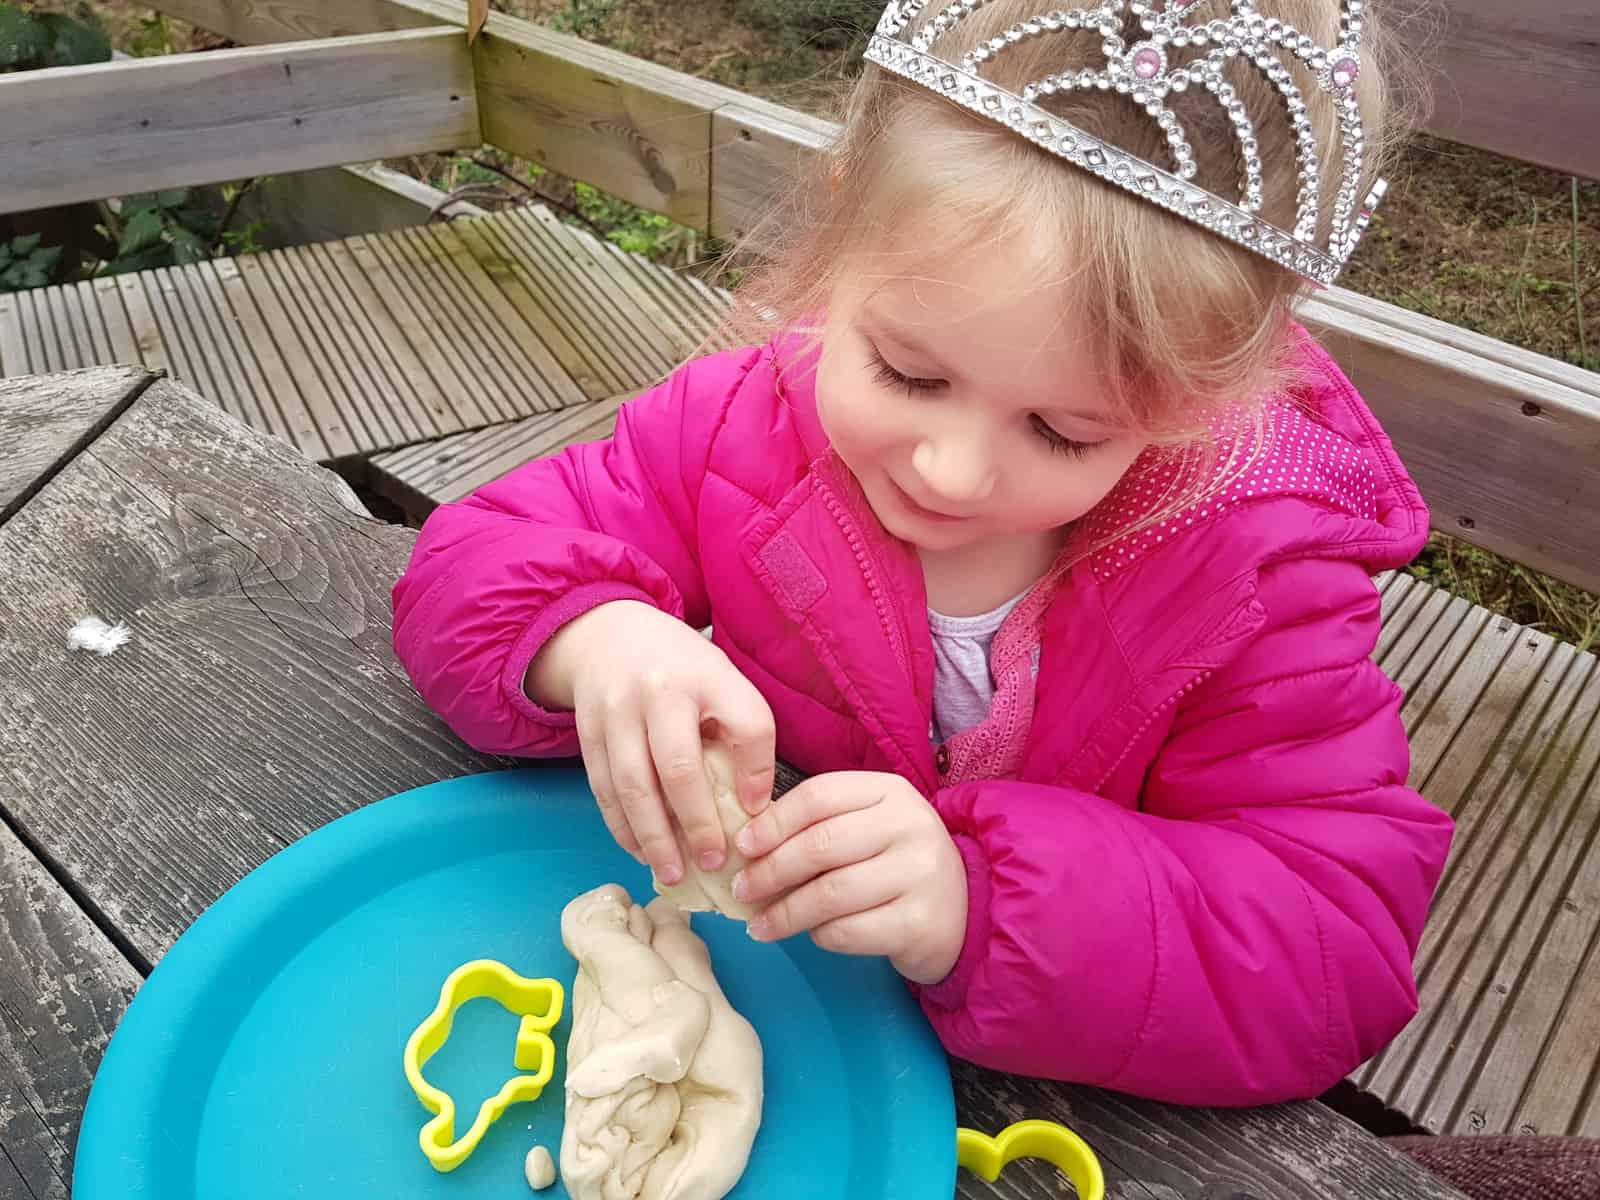 Little girl in pink coat and tiara creating a circuit from play dough with STEM science kit